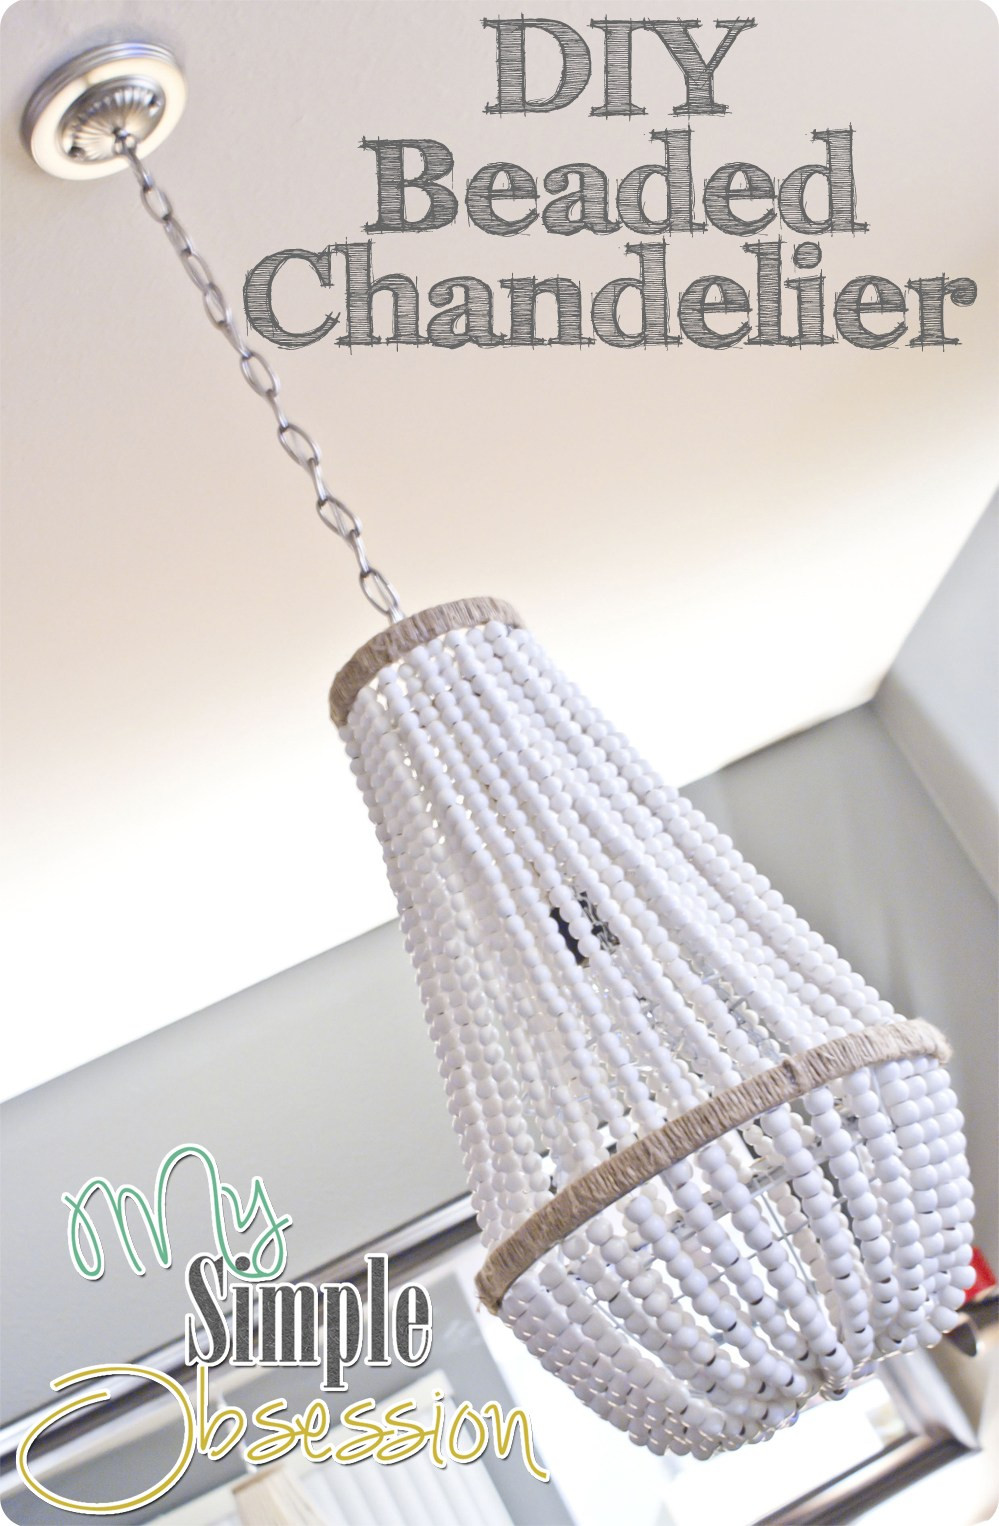 Best ideas about Wood Bead Chandelier DIY . Save or Pin Upcycle a Plain Chandelier into a Beaded Showpiece Now.